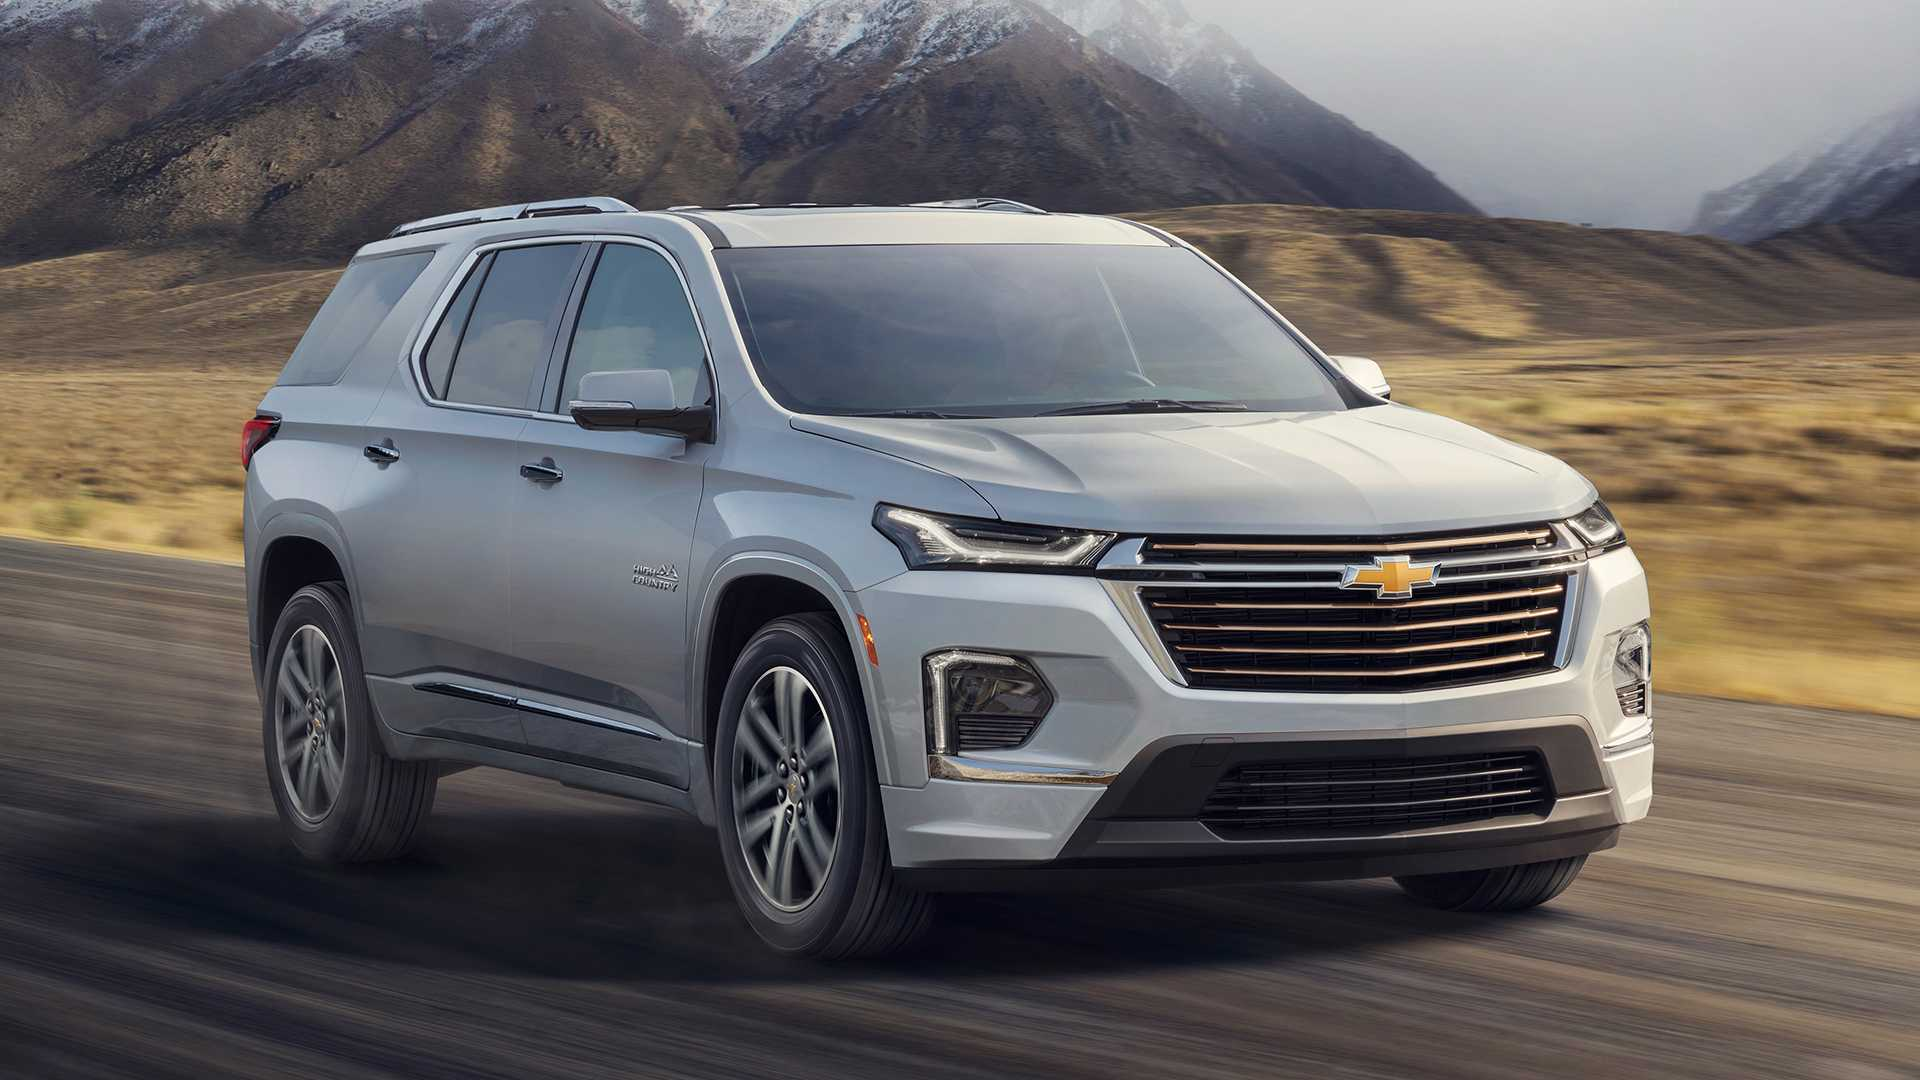 2021 Chevrolet Traverse Refresh Pushed Back To 2022 The News Wheel